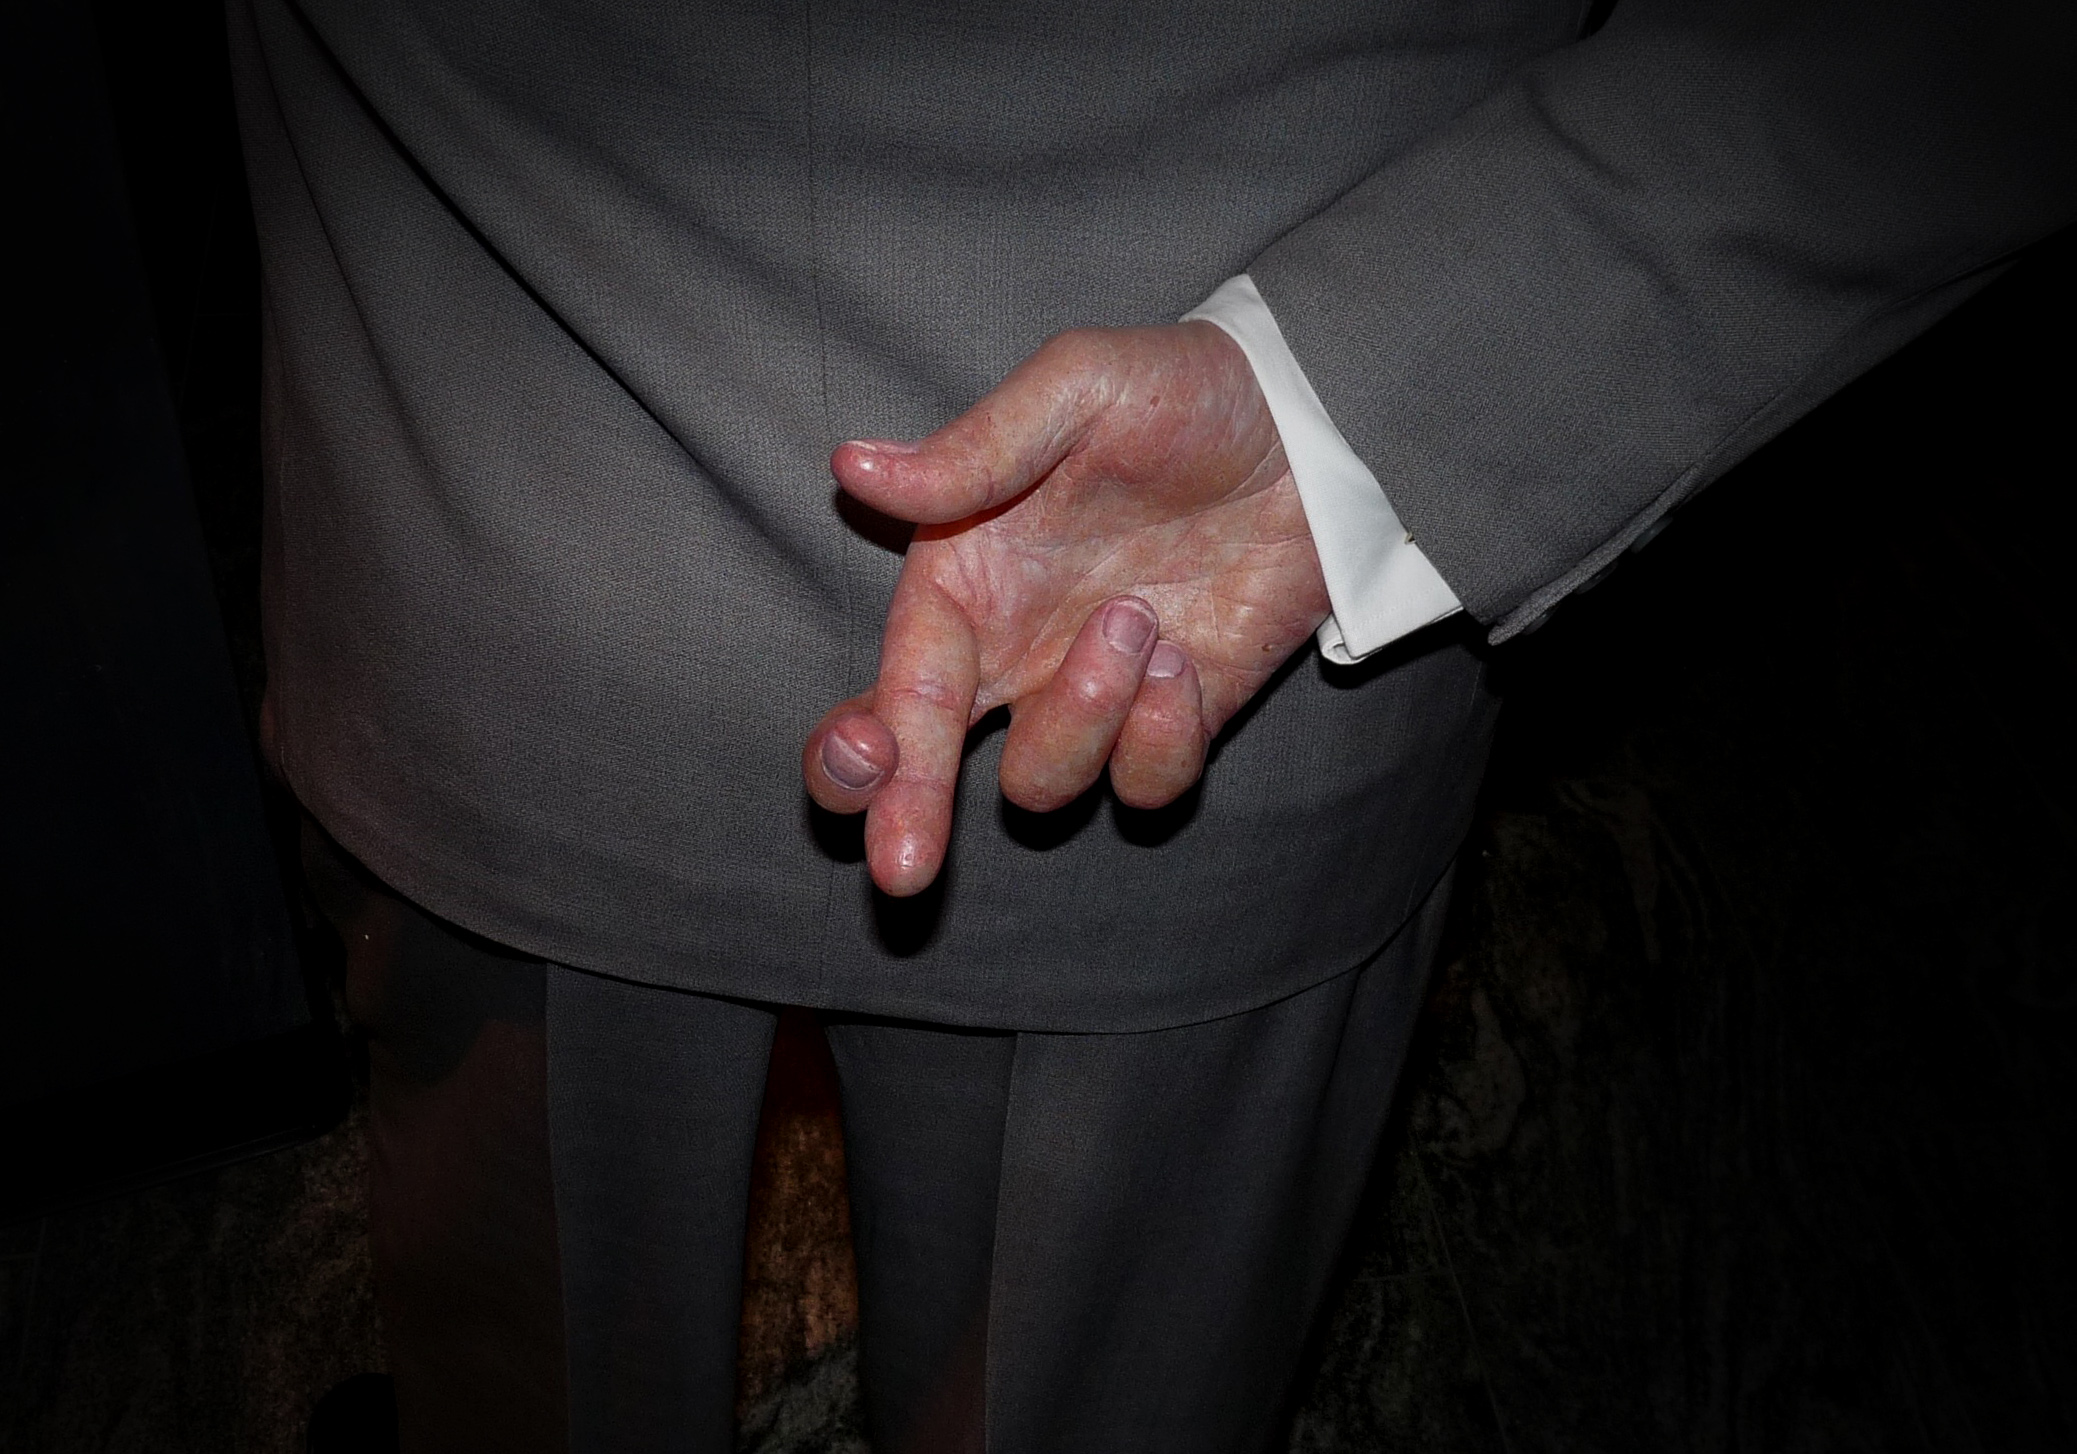 suited old man in shadows crosses his fingers behind his back